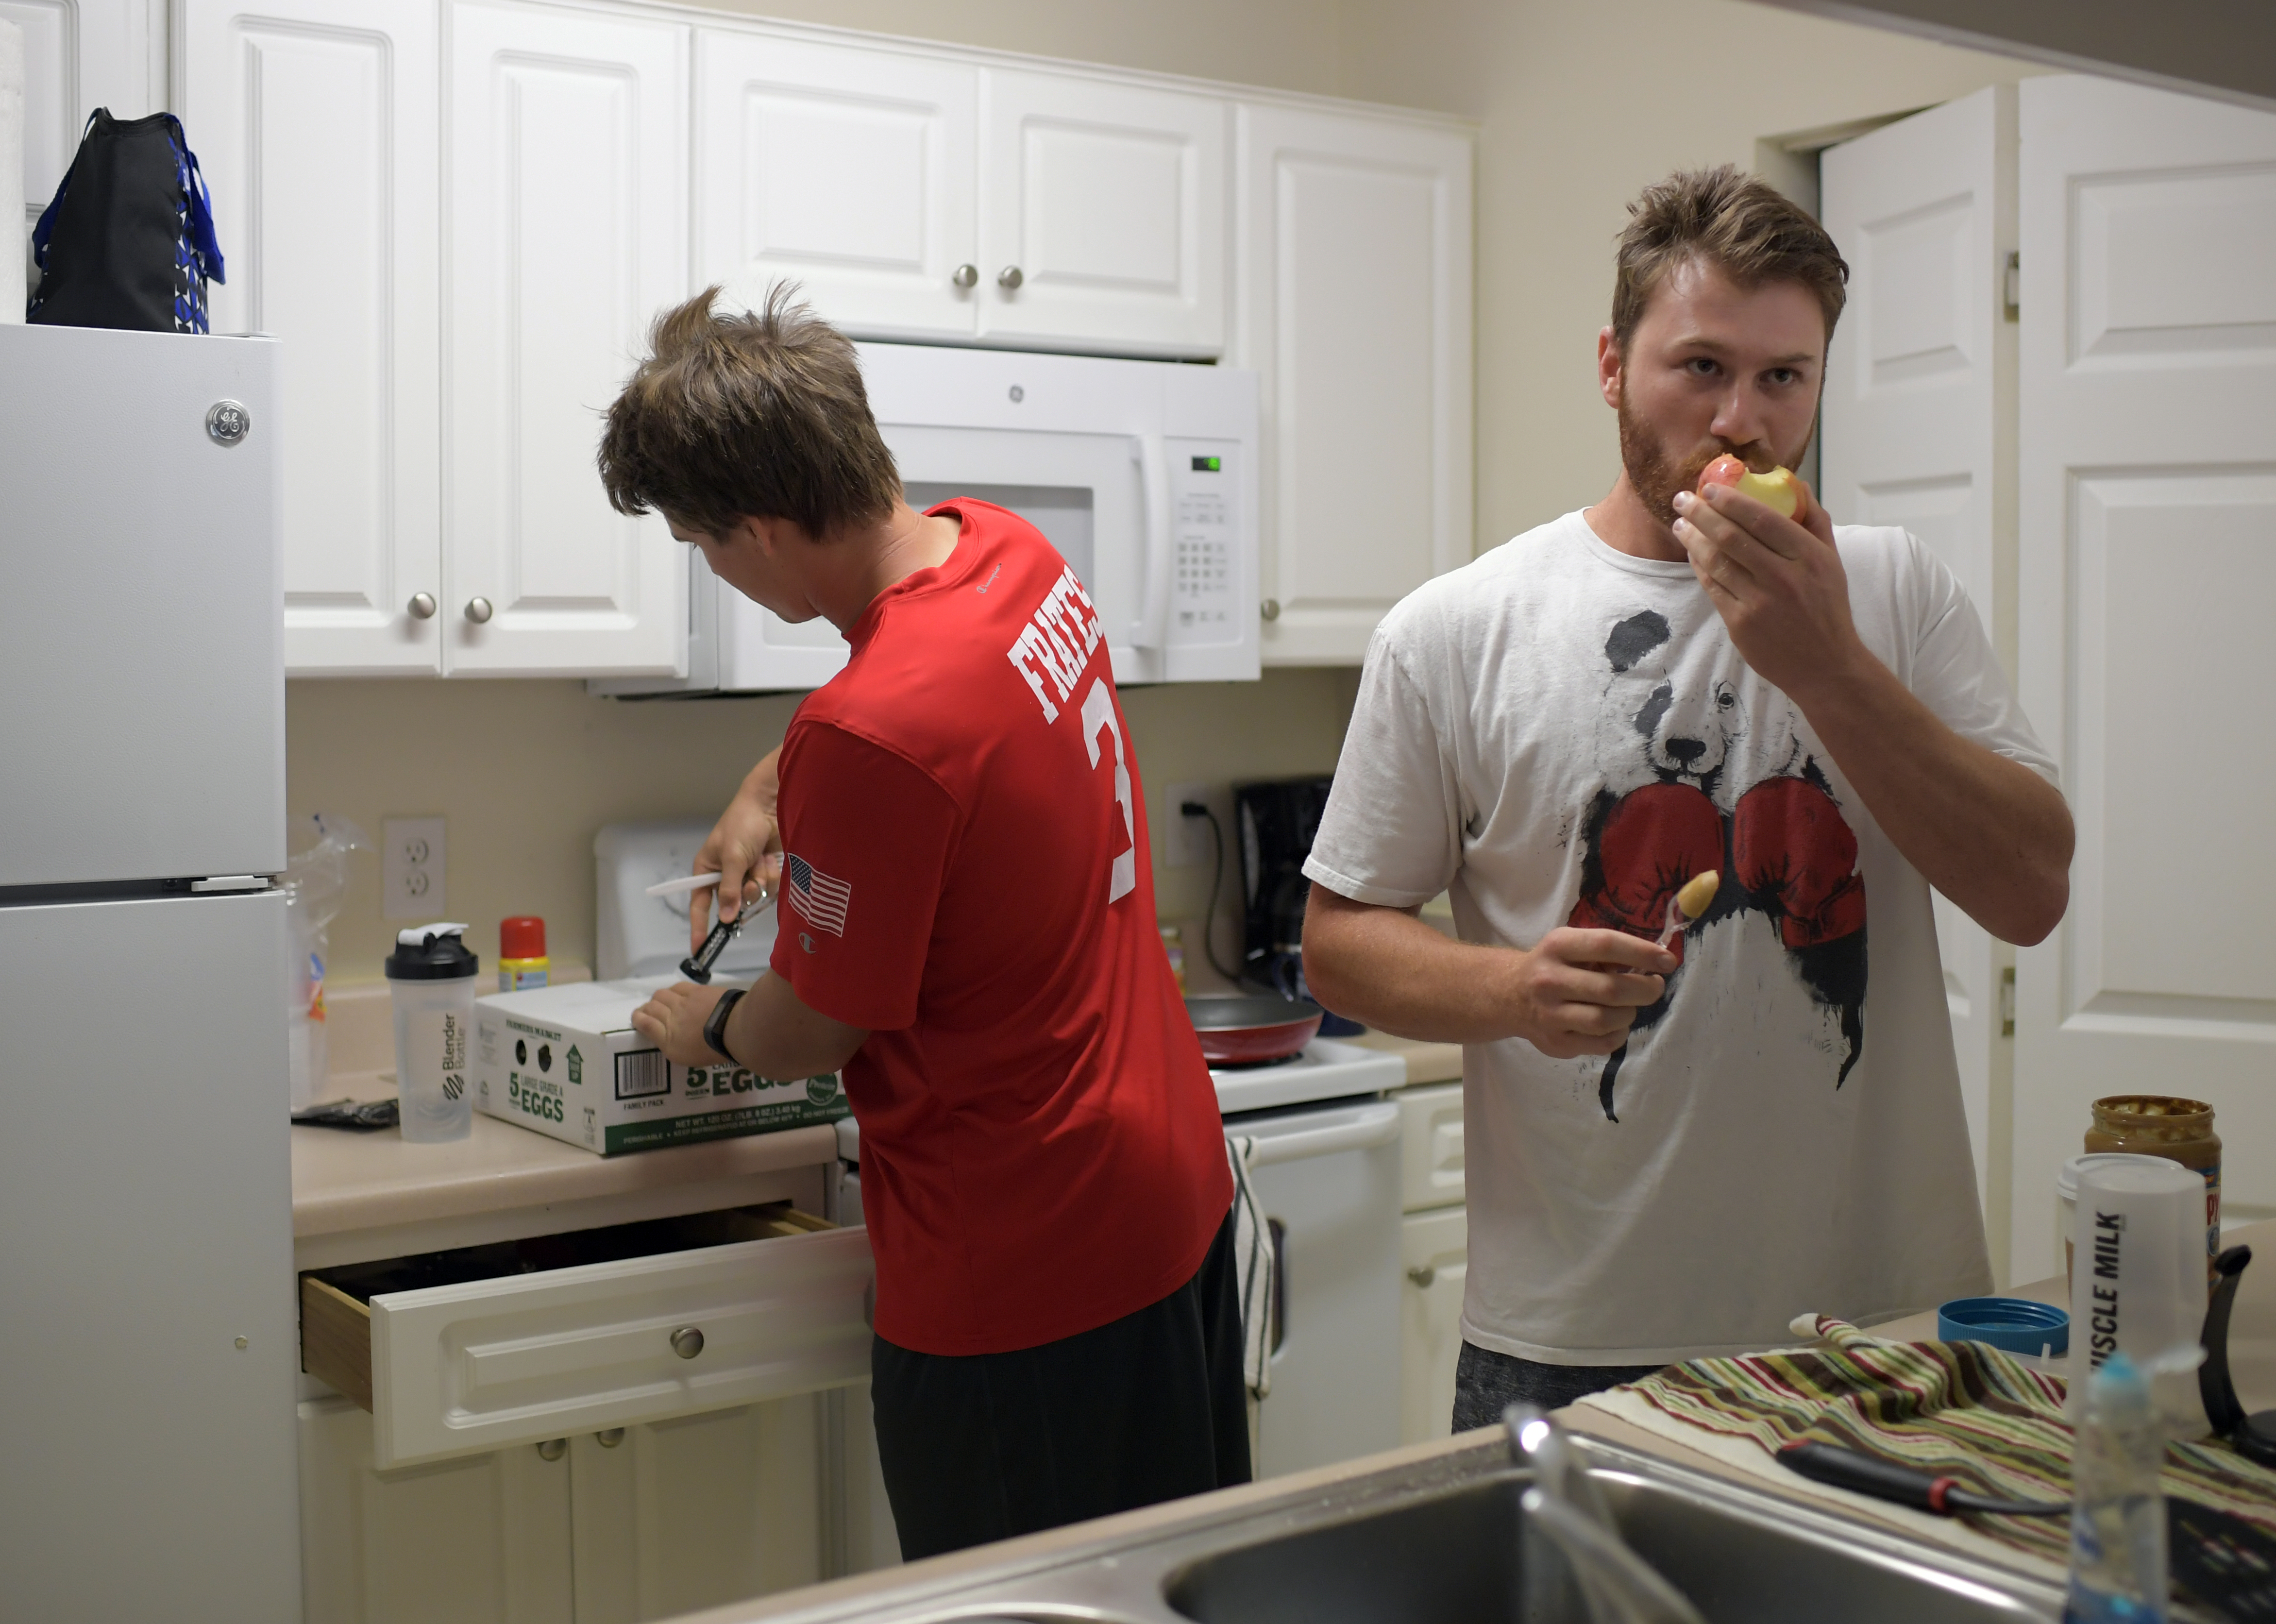 Matt Pare' of the single A Augusta GreenJackets ( left) opens a box of eggs in the kitchen as teammate Adam Sonabend eats and apple with peanut butter during breakfast in a an apartment that they share with other teammates in Augusta Ga., on July 15, 2016. MUST CREDIT: Washington Post photo by John McDonnell.